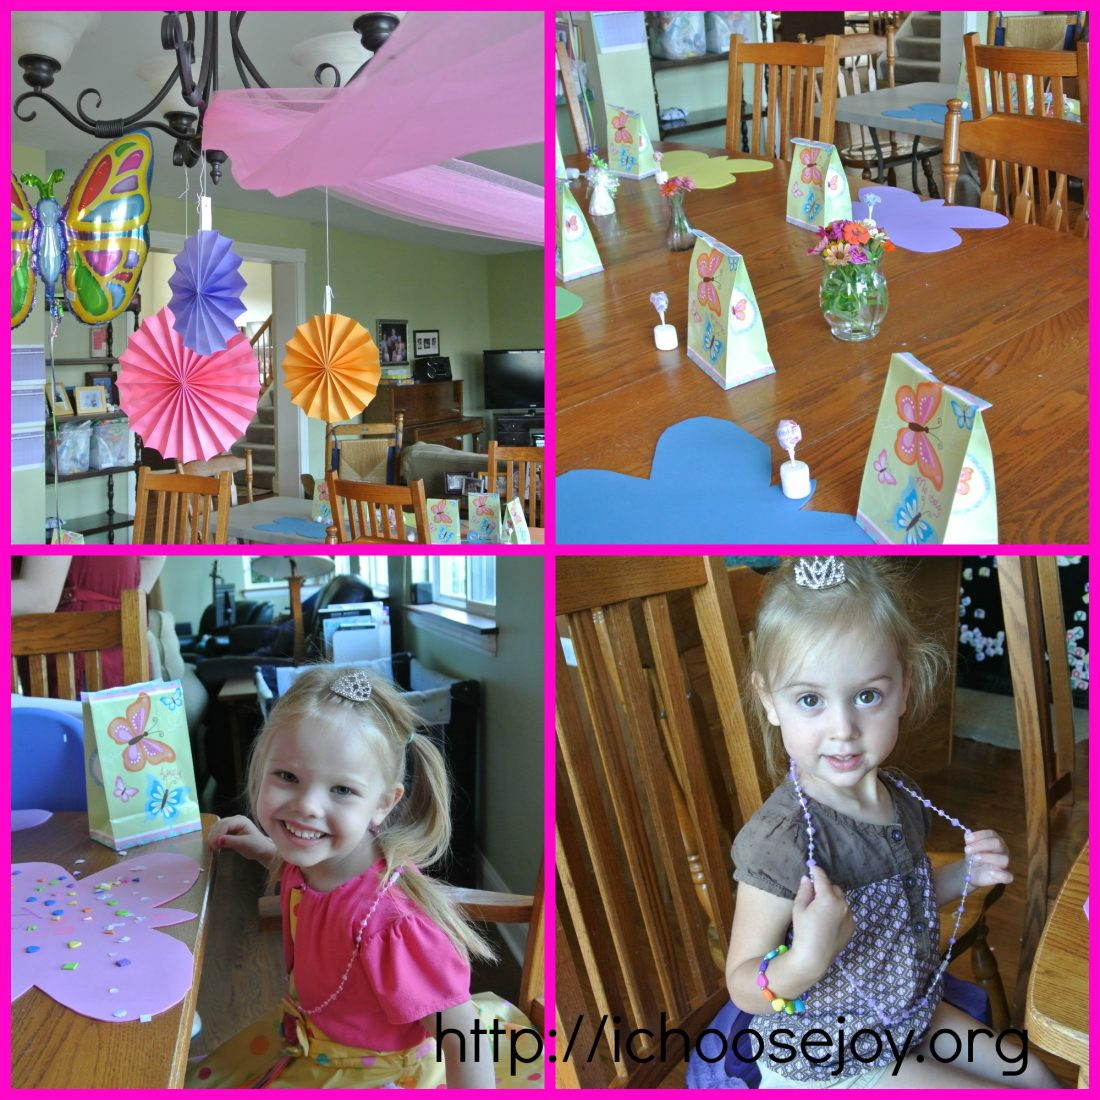 From House to Home {Link Party}: Tea Party Ideas!